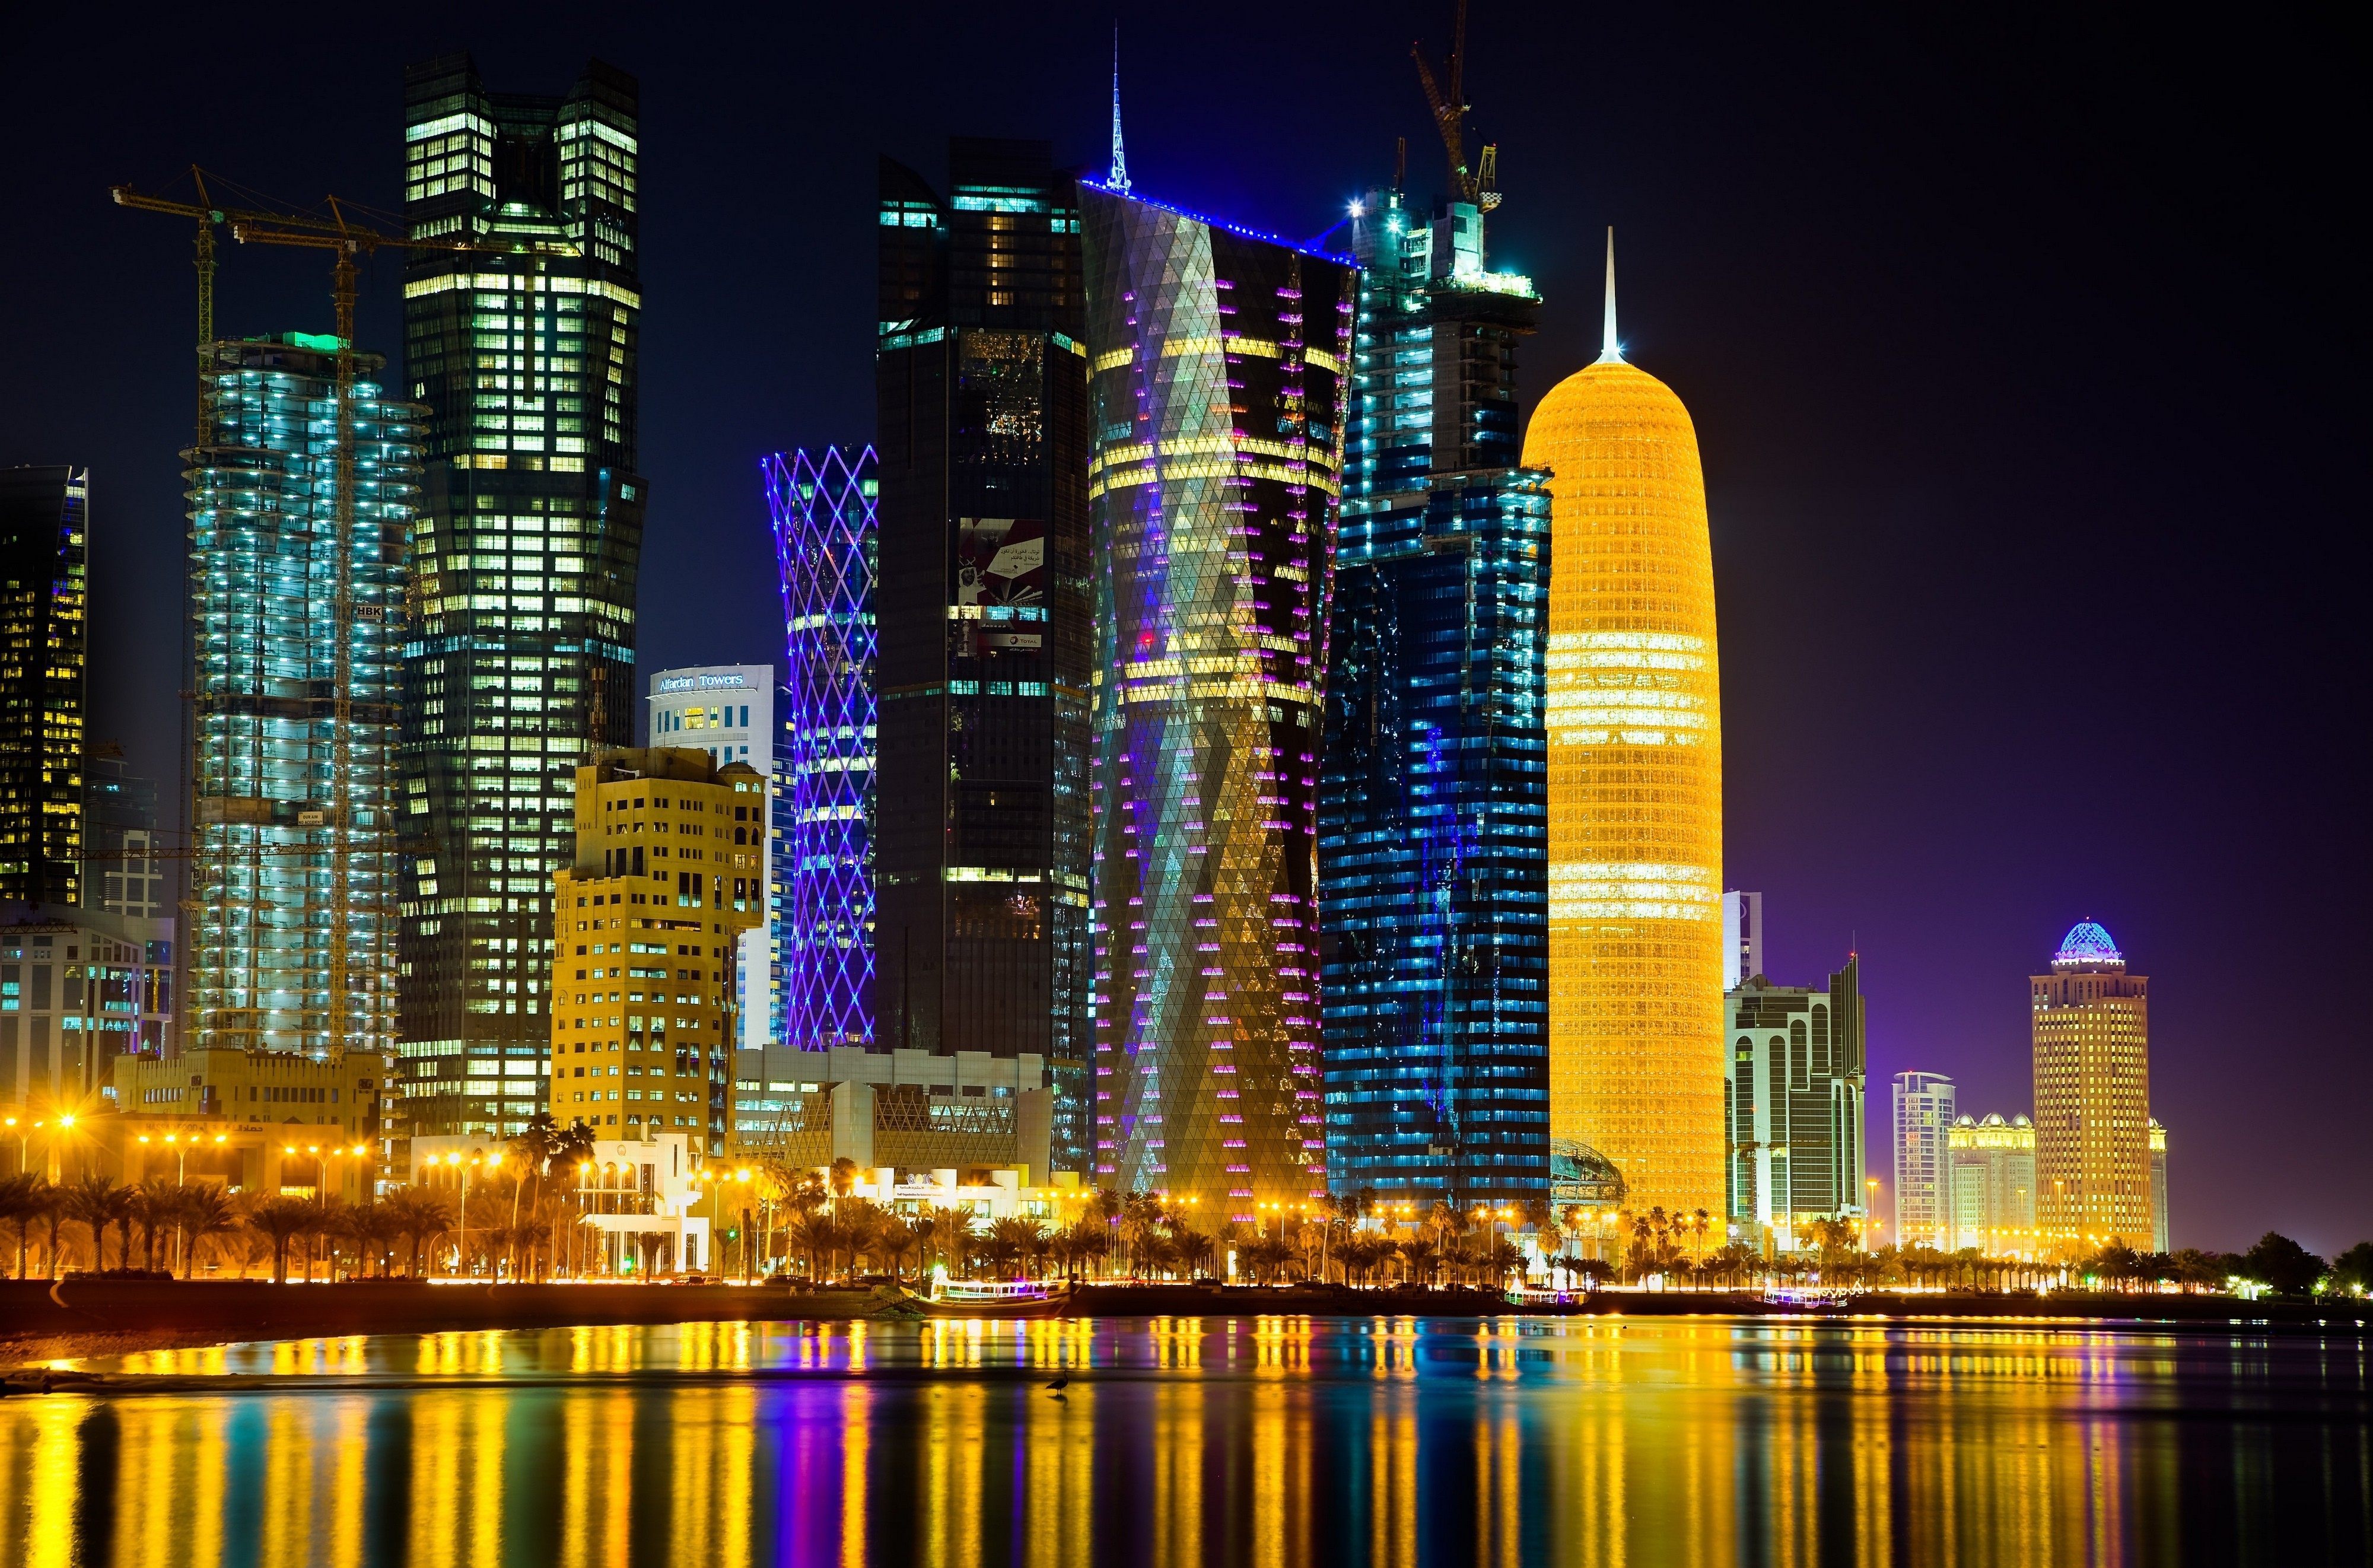 doha at night 4k ultra hd wallpaper background image 4000x2643 id 525764 wallpaper abyss. Black Bedroom Furniture Sets. Home Design Ideas